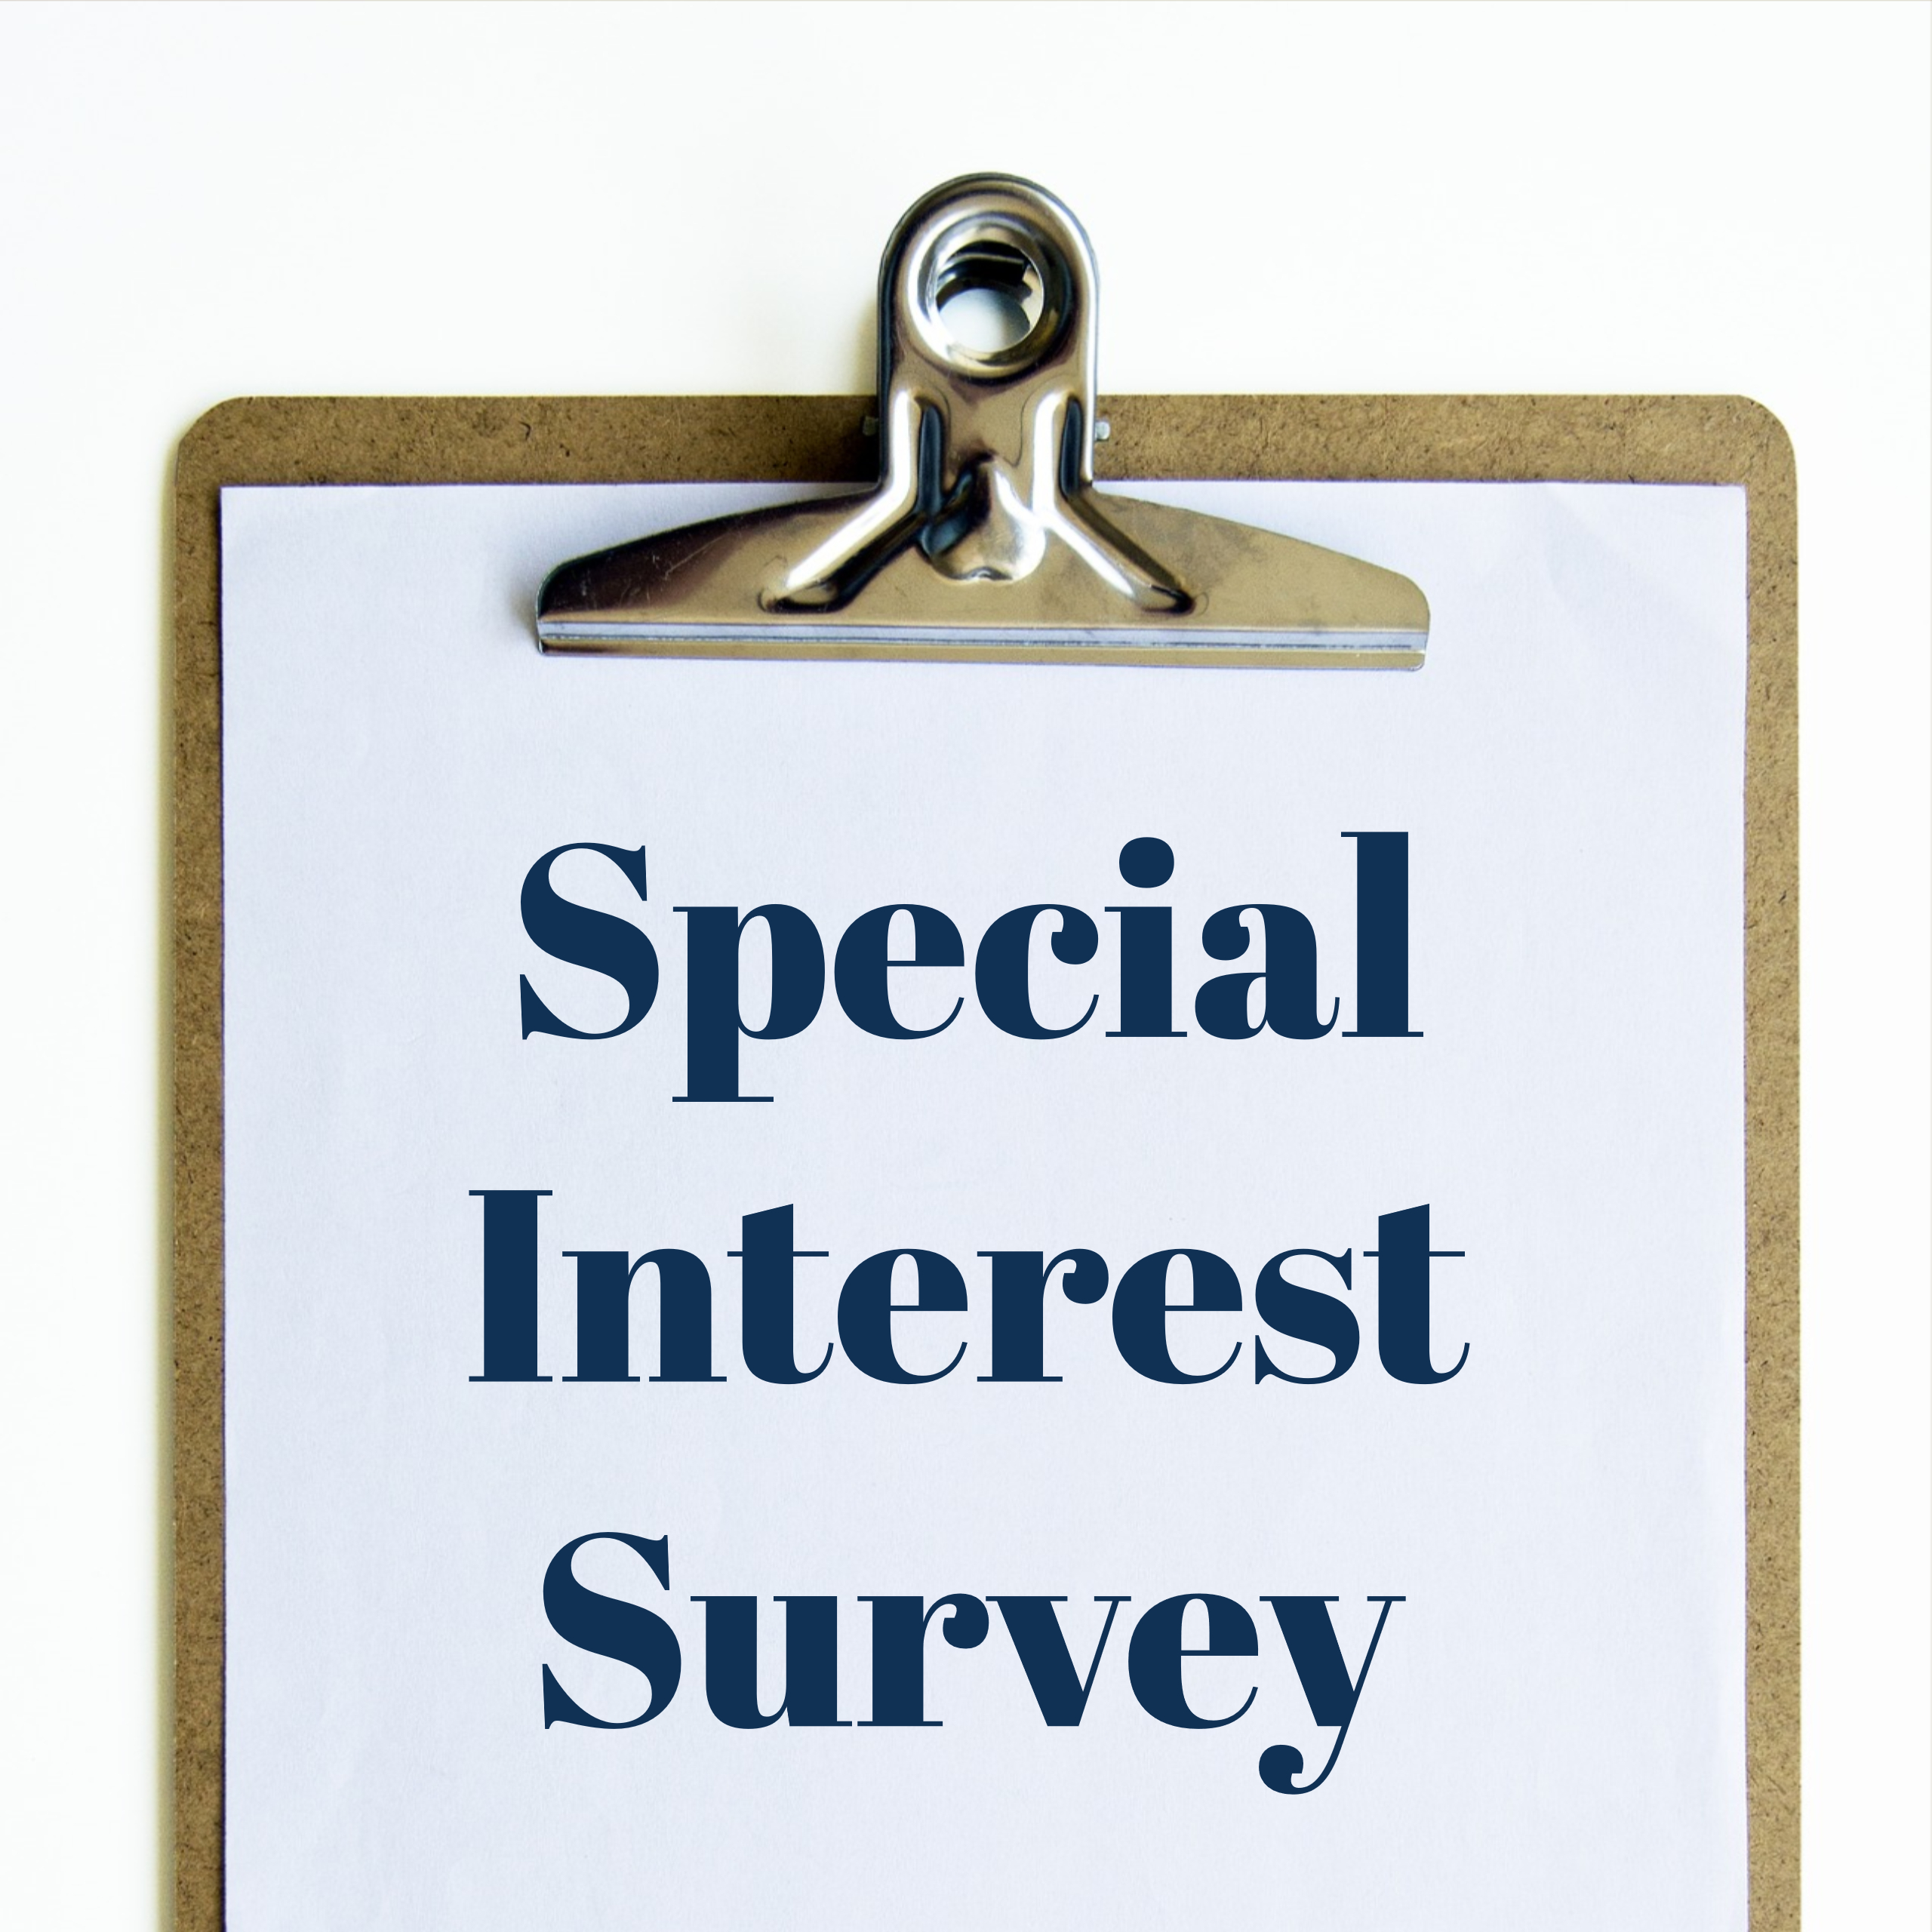 Special Interest Survey